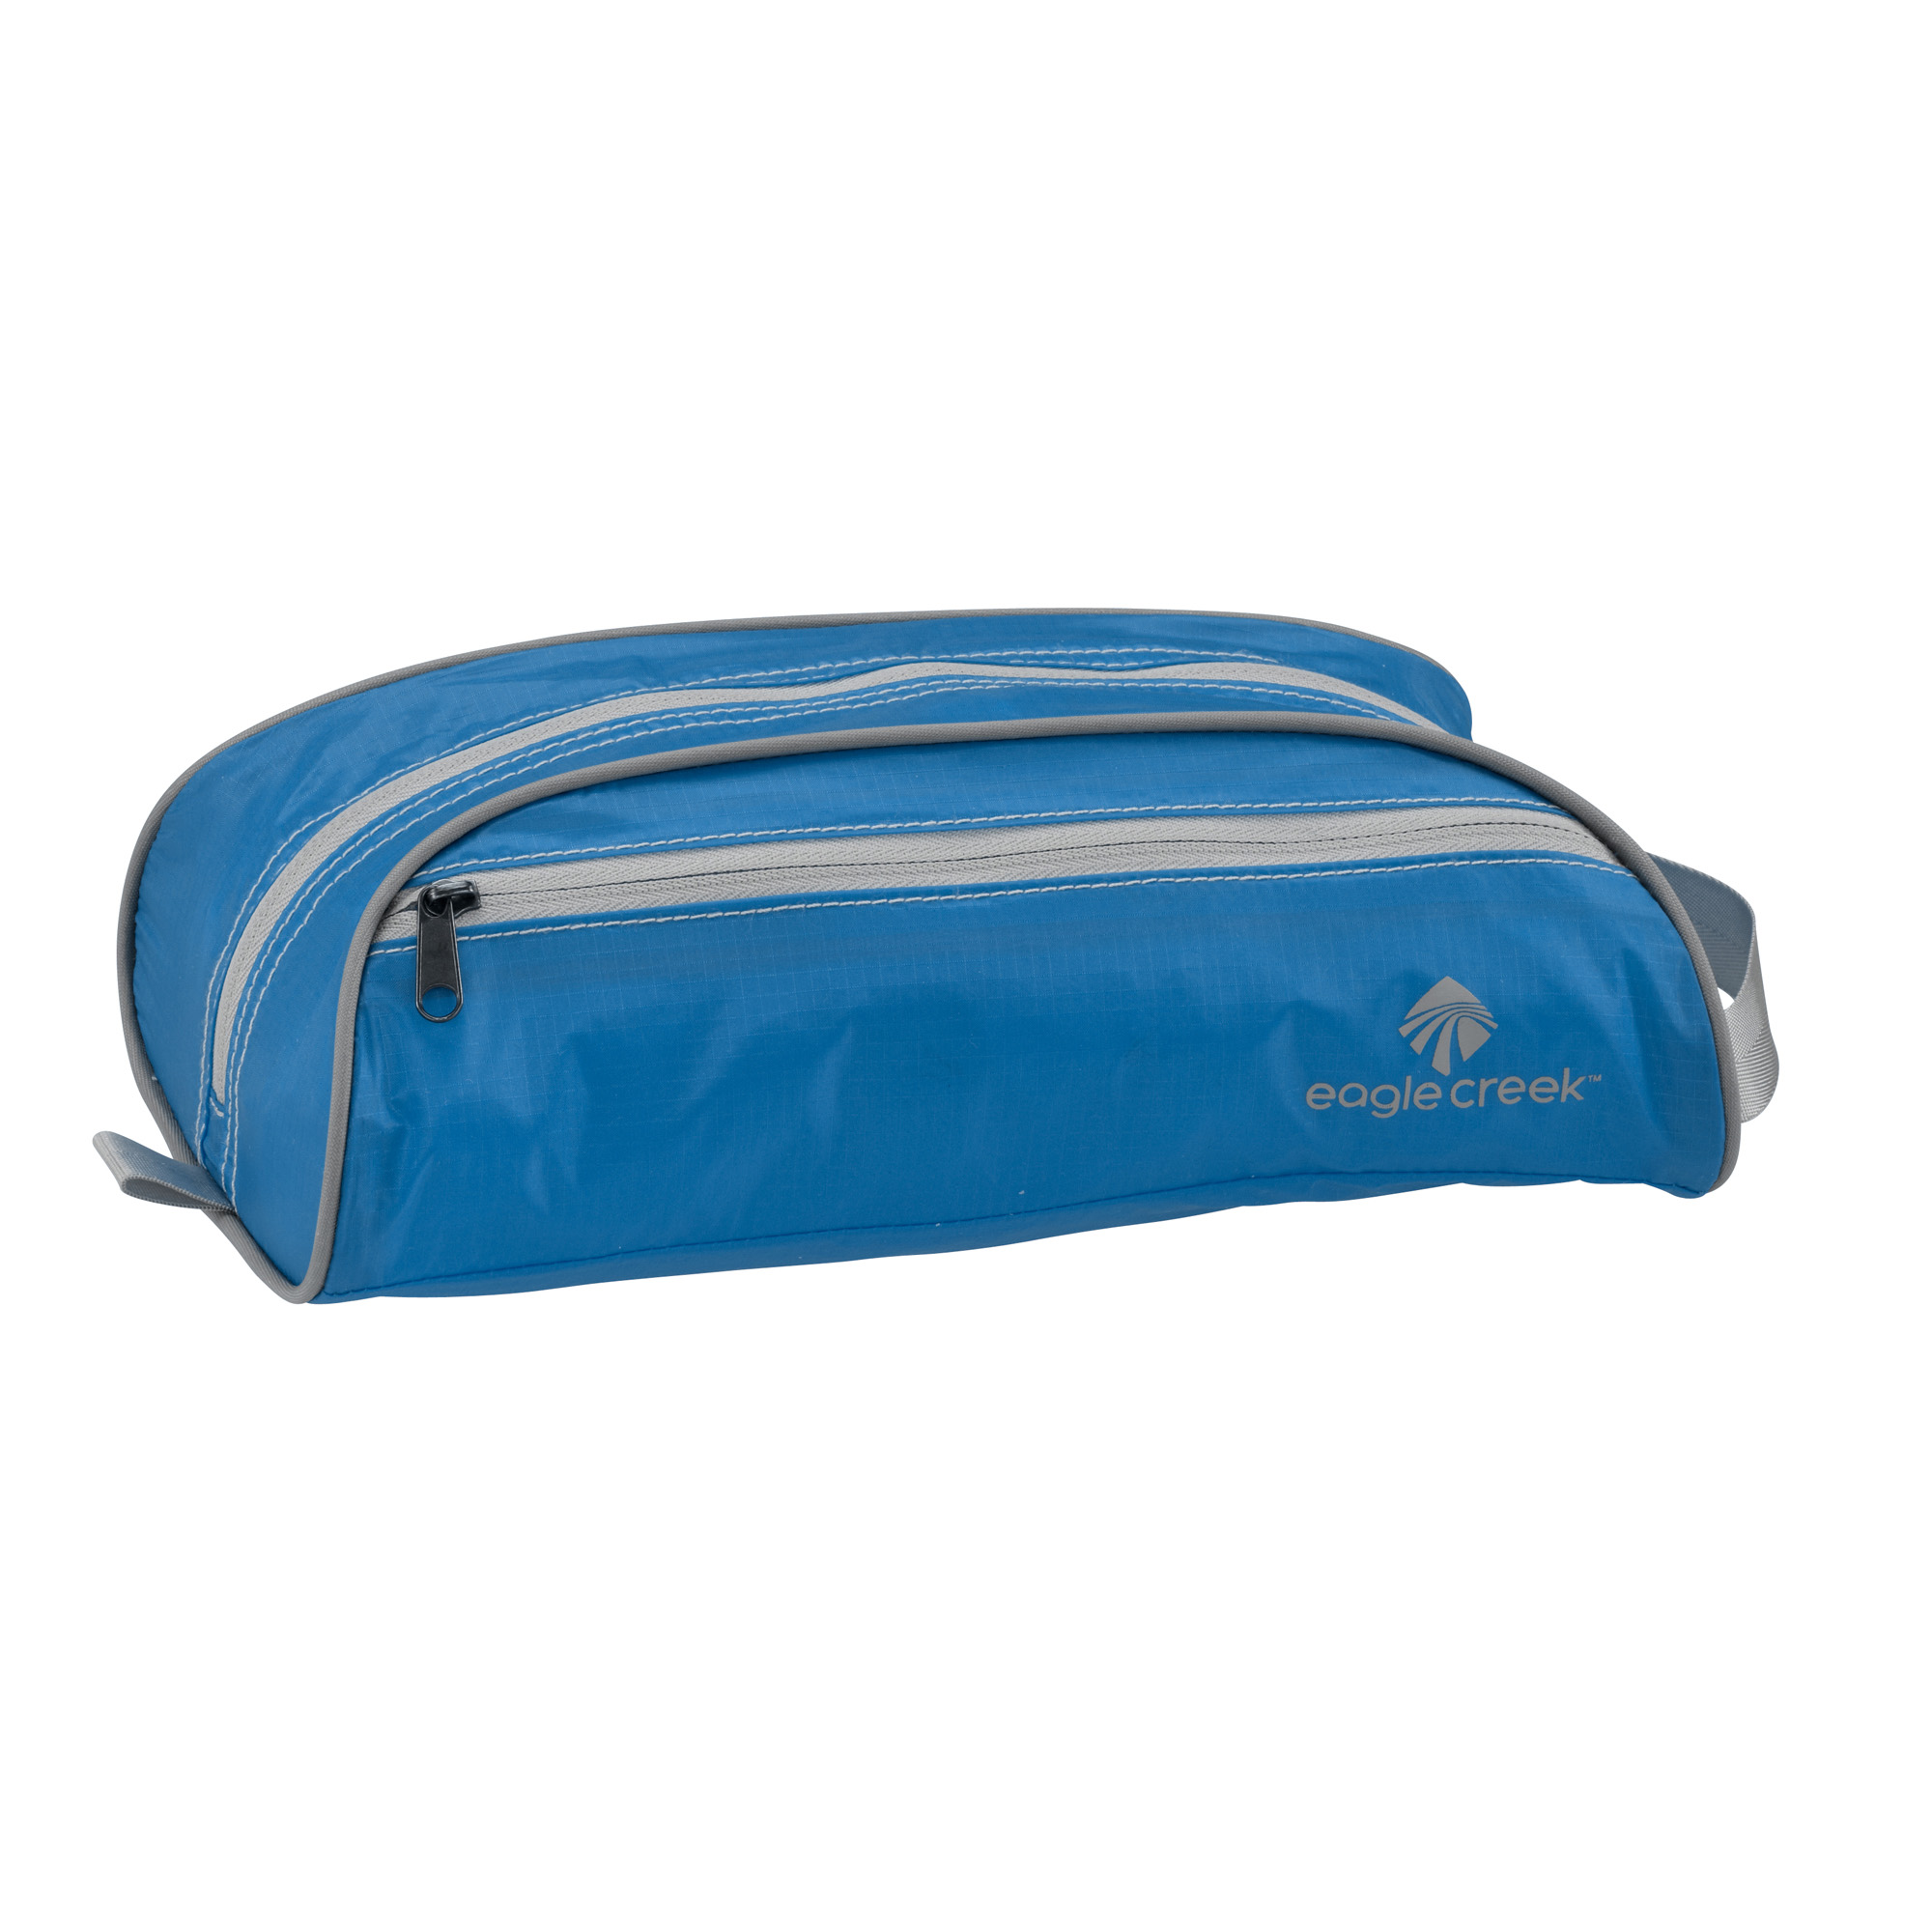 Pack-It Specter Quick Trip - Brilliant Blue